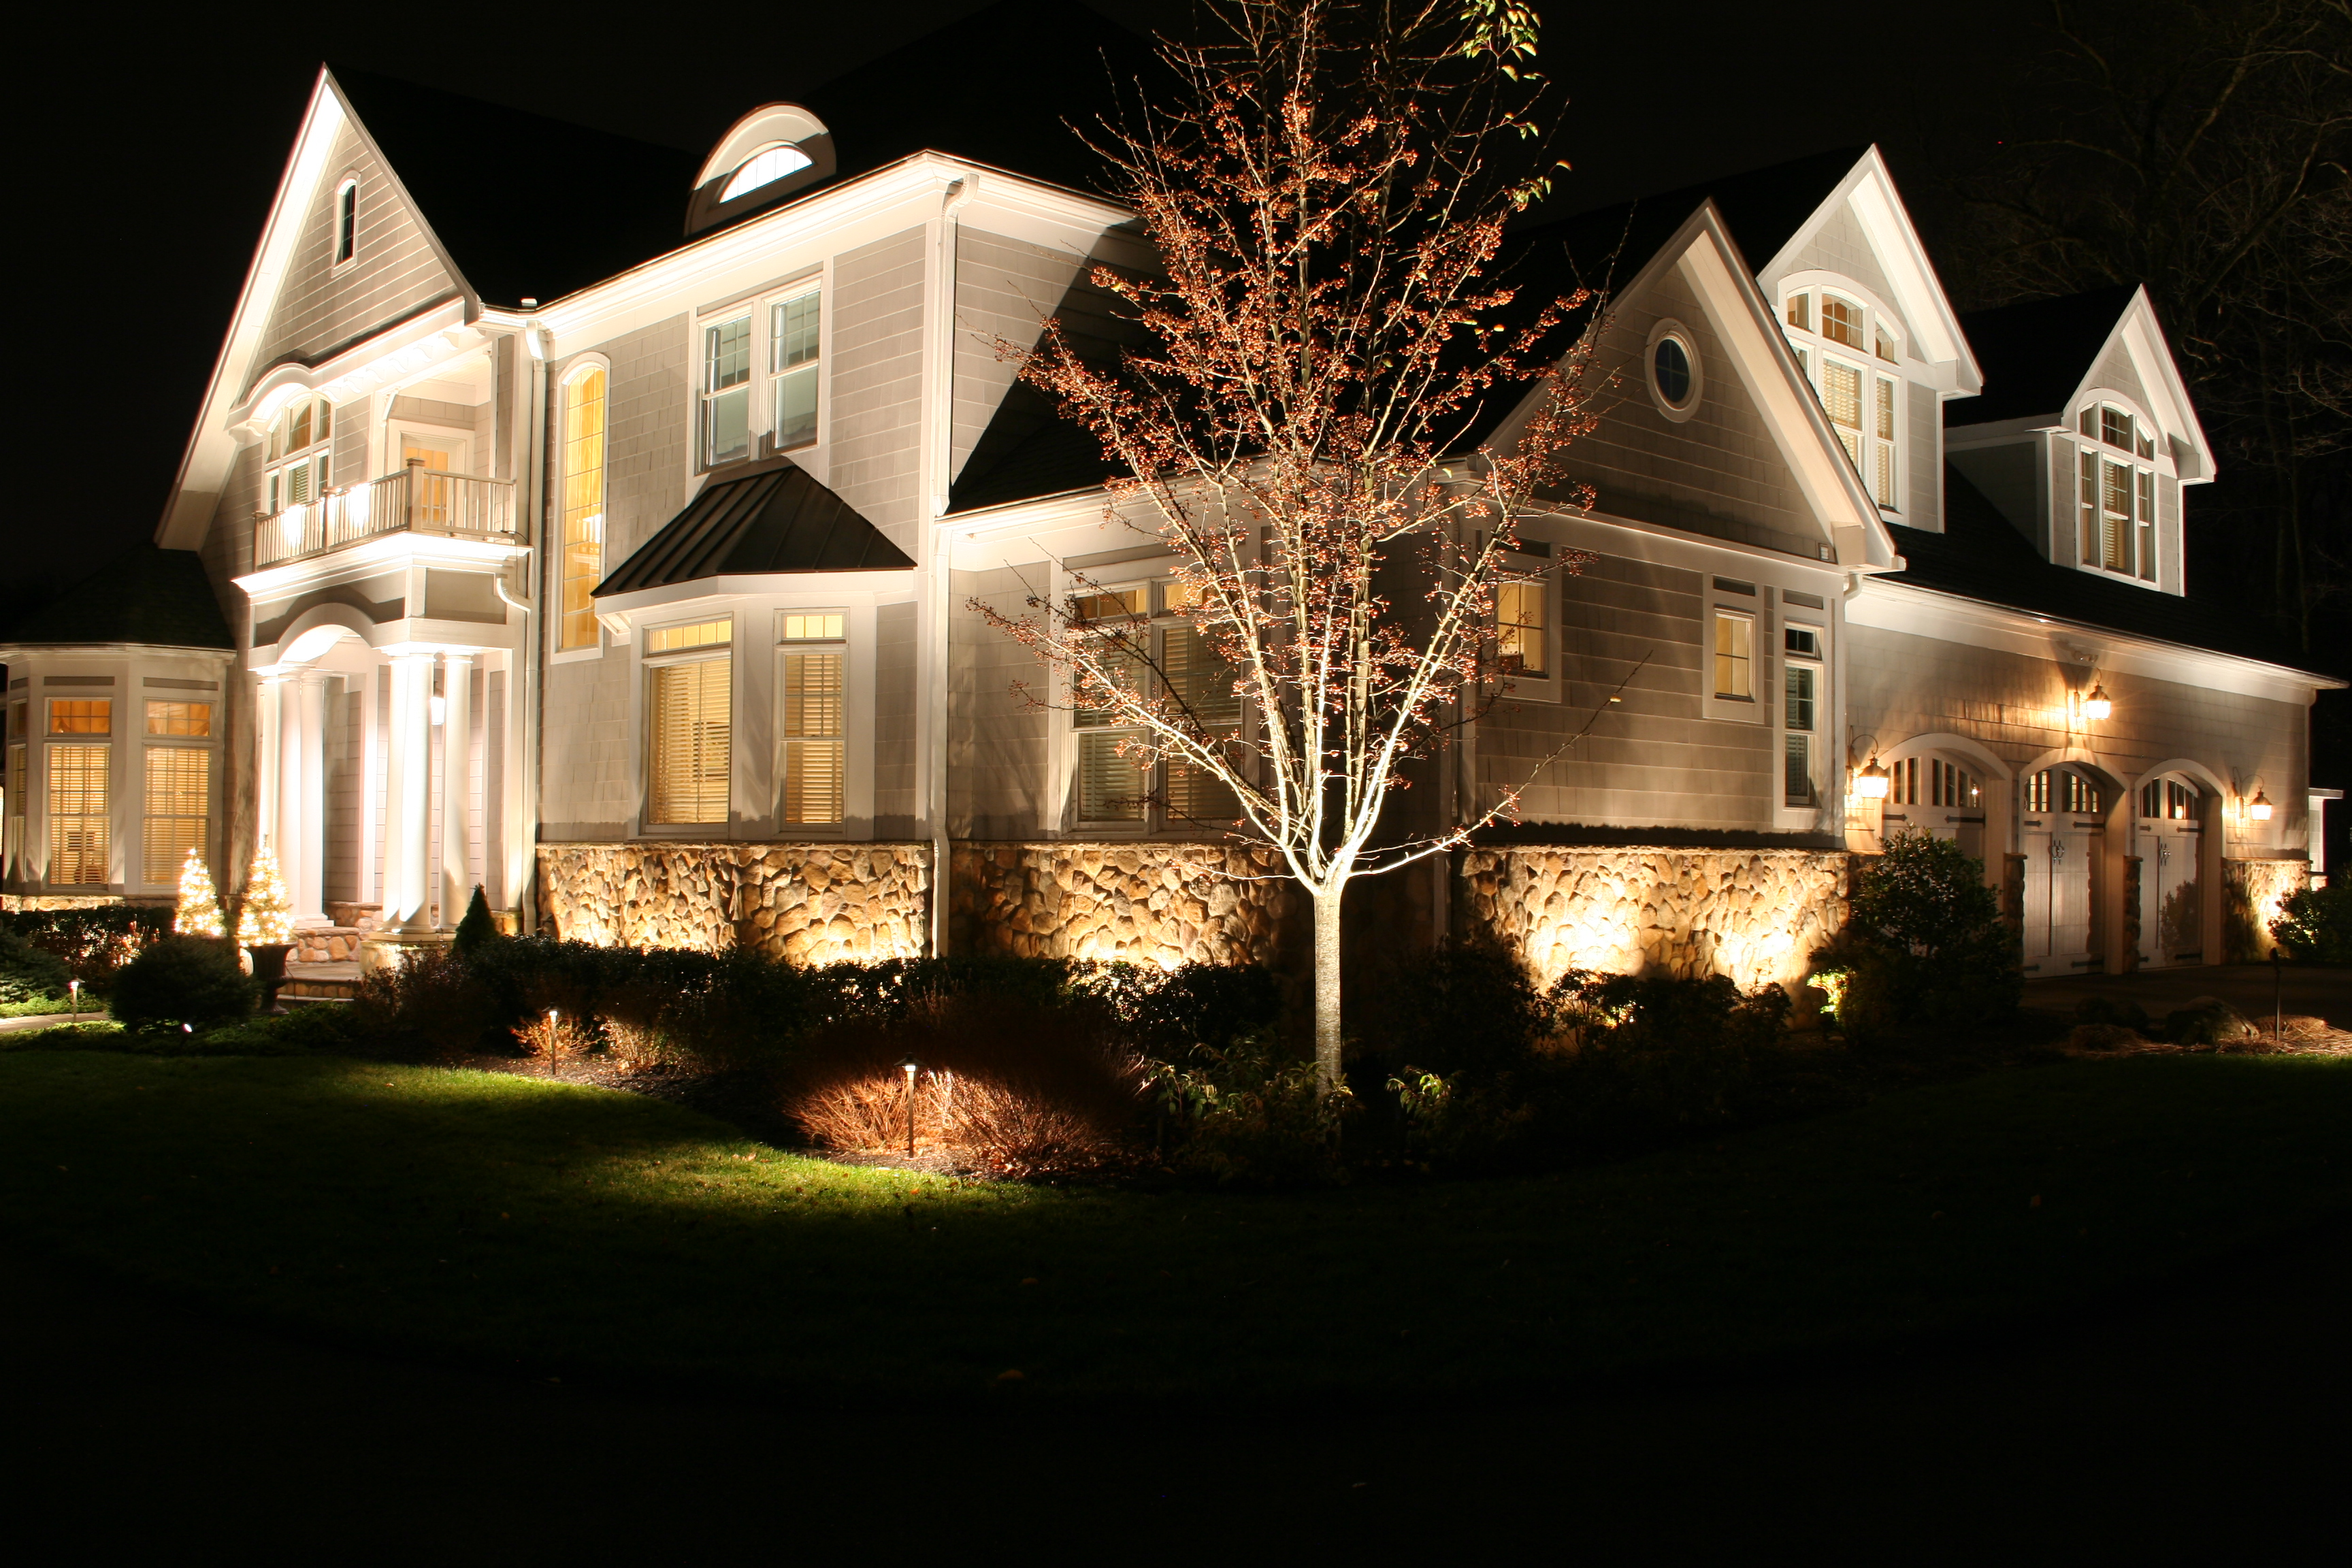 Landscape lighting designer michael gotowala shows us a night time scene that we all would Home design ideas lighting